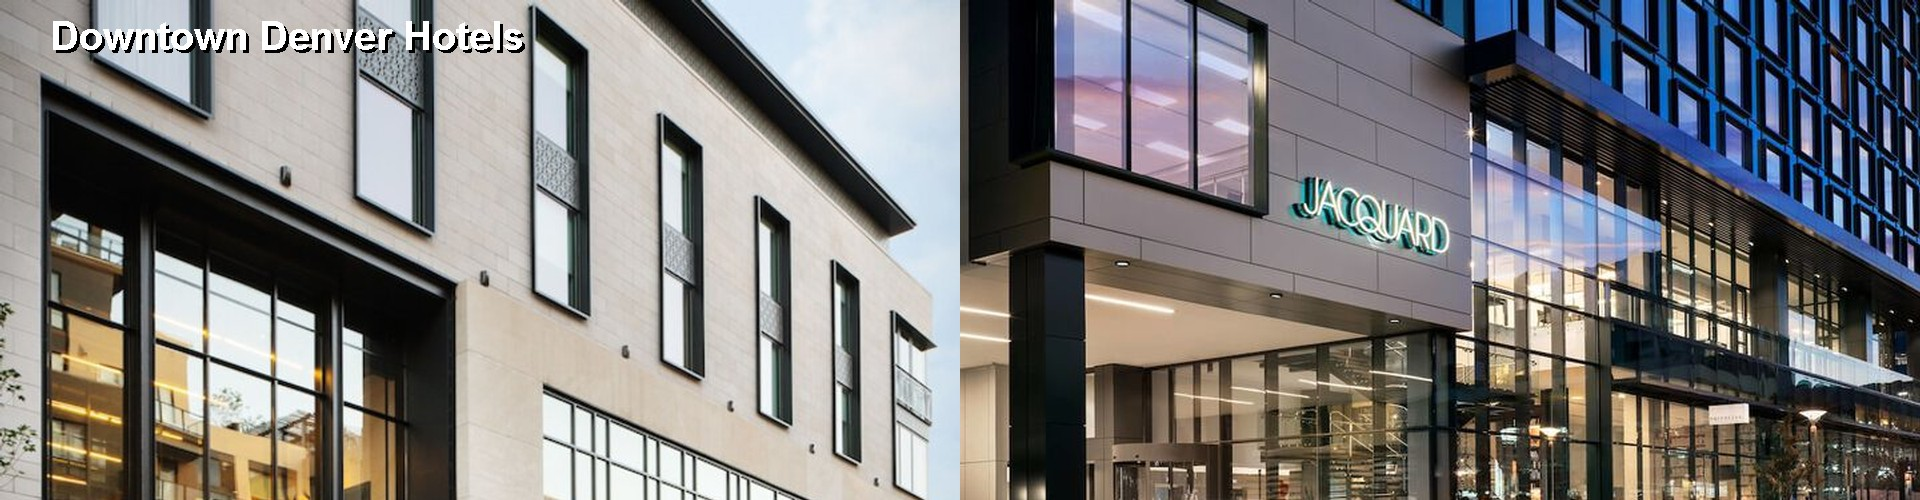 5 Best Hotels near Downtown Denver